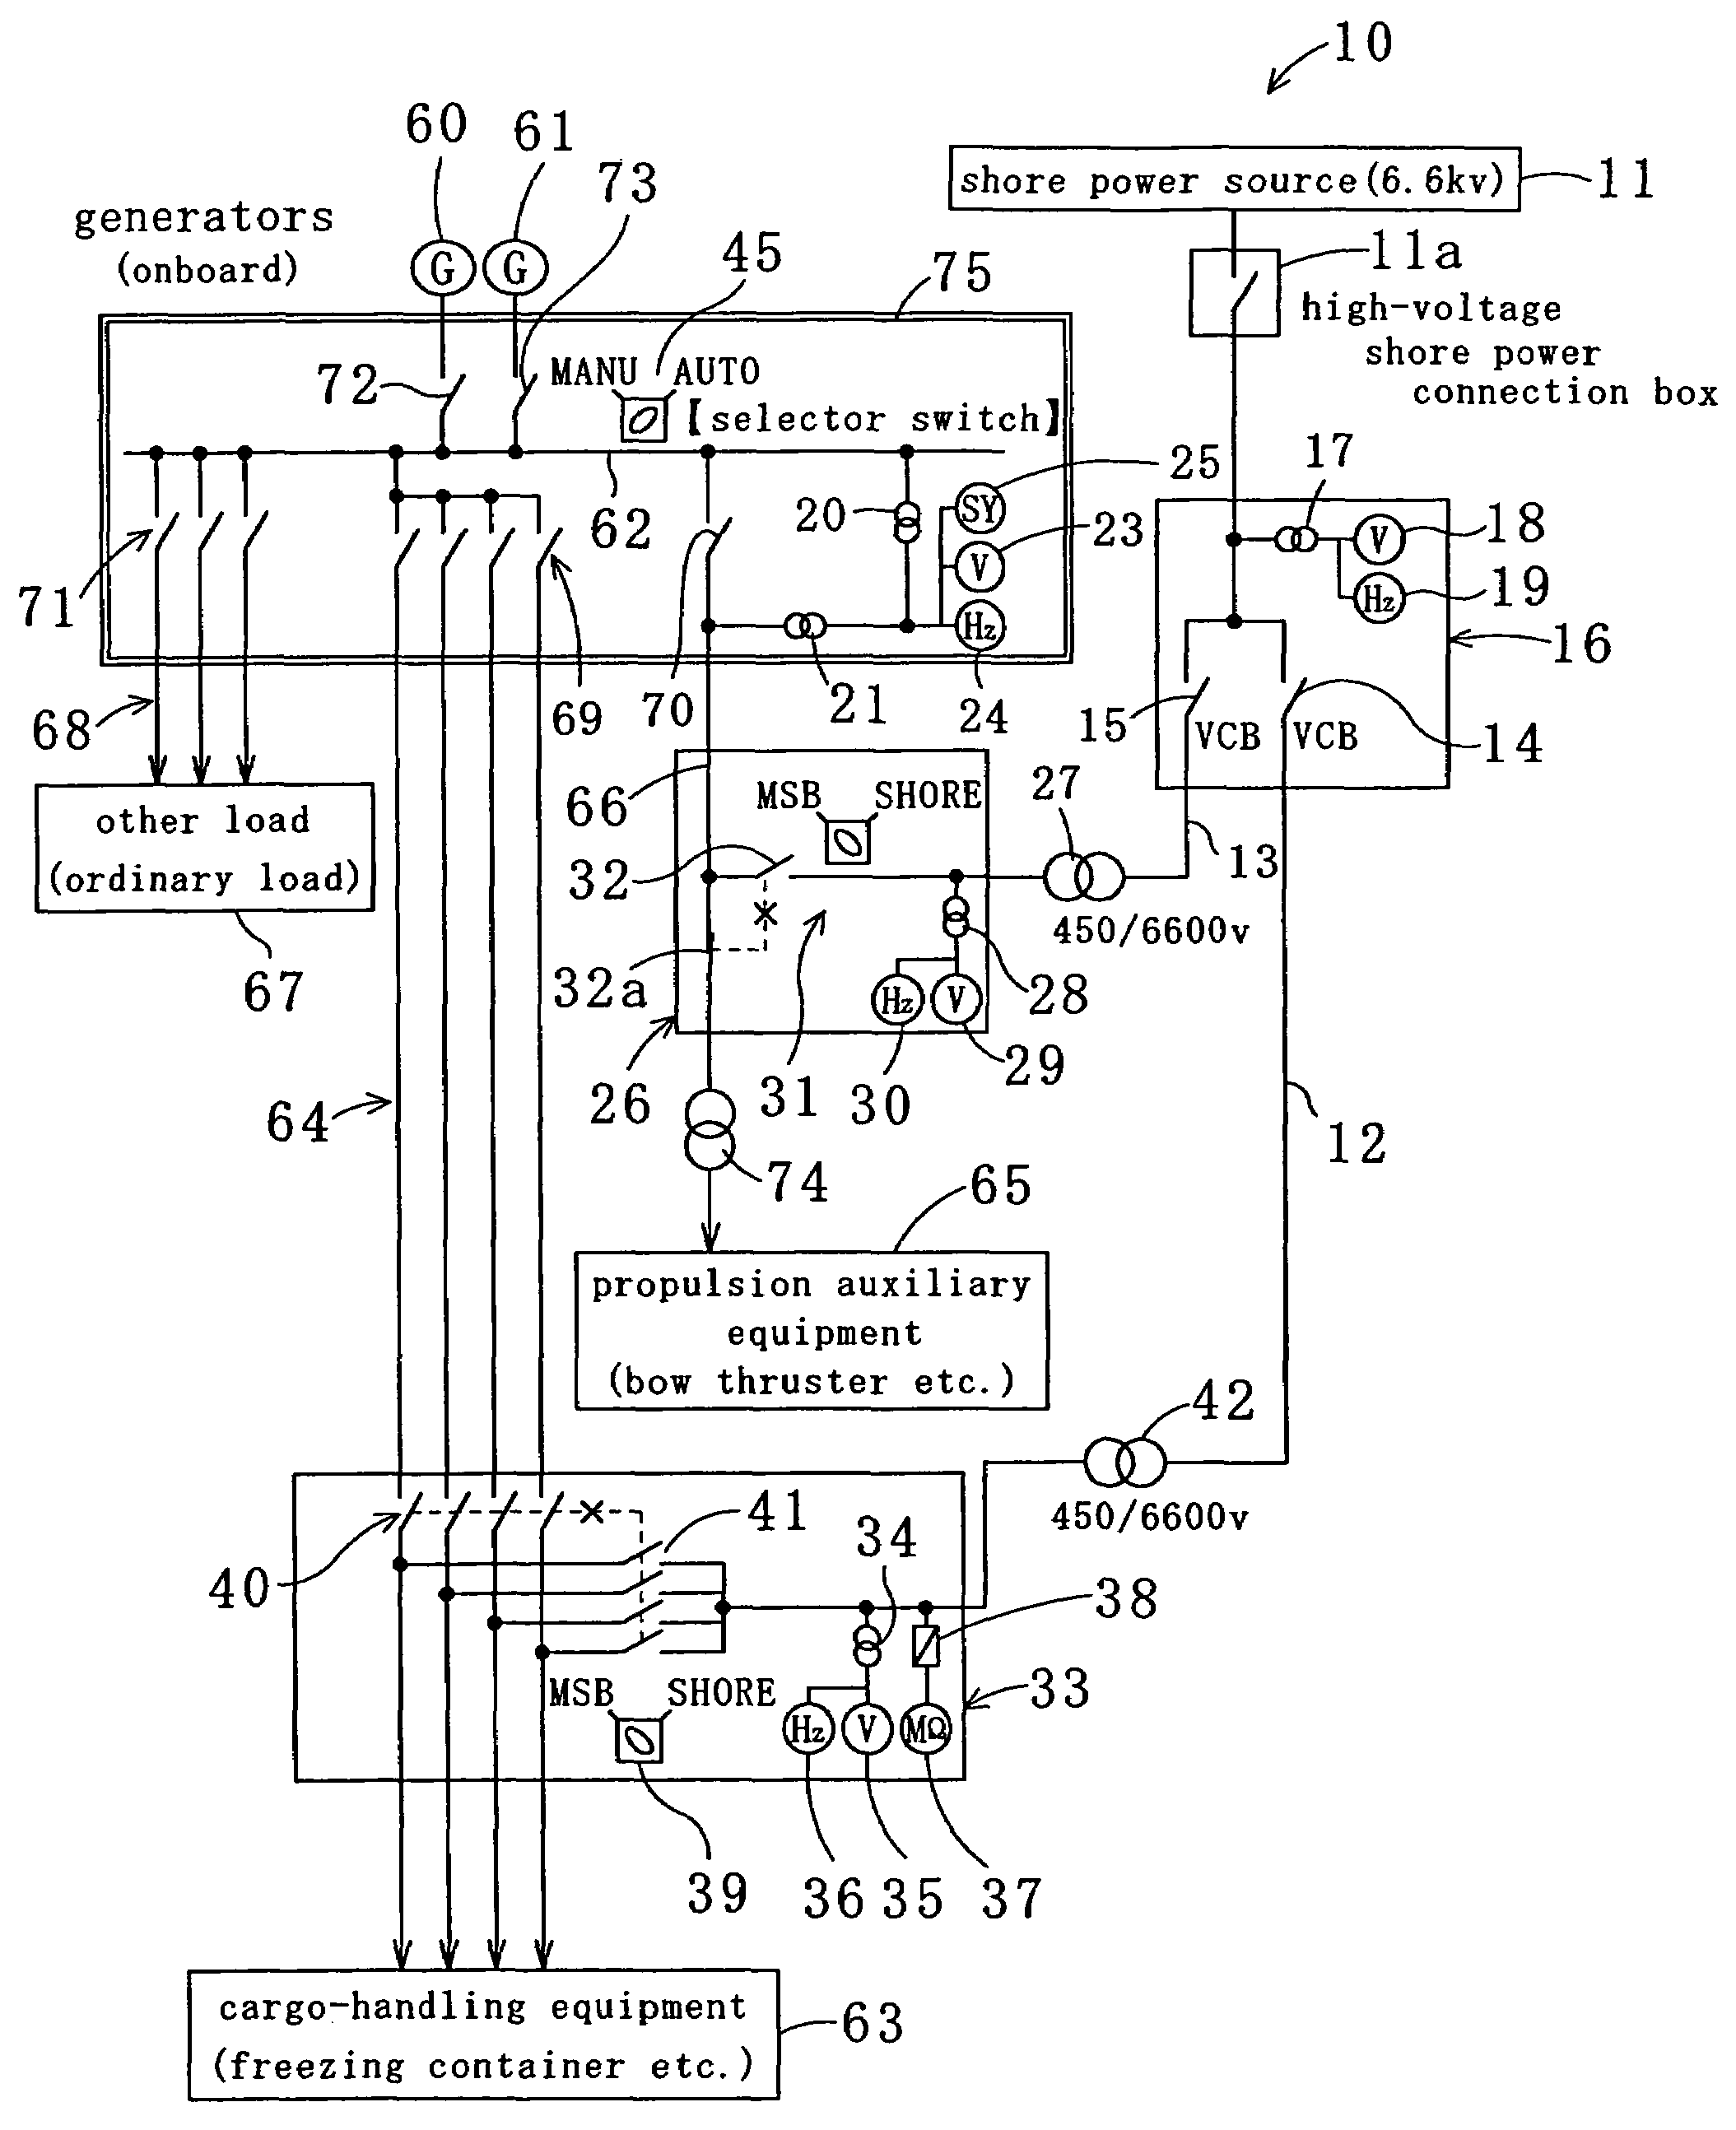 US07253538 20070807 D00000 patent us7253538 method of supplying electric power from shore vcb panel wiring diagram at beritabola.co